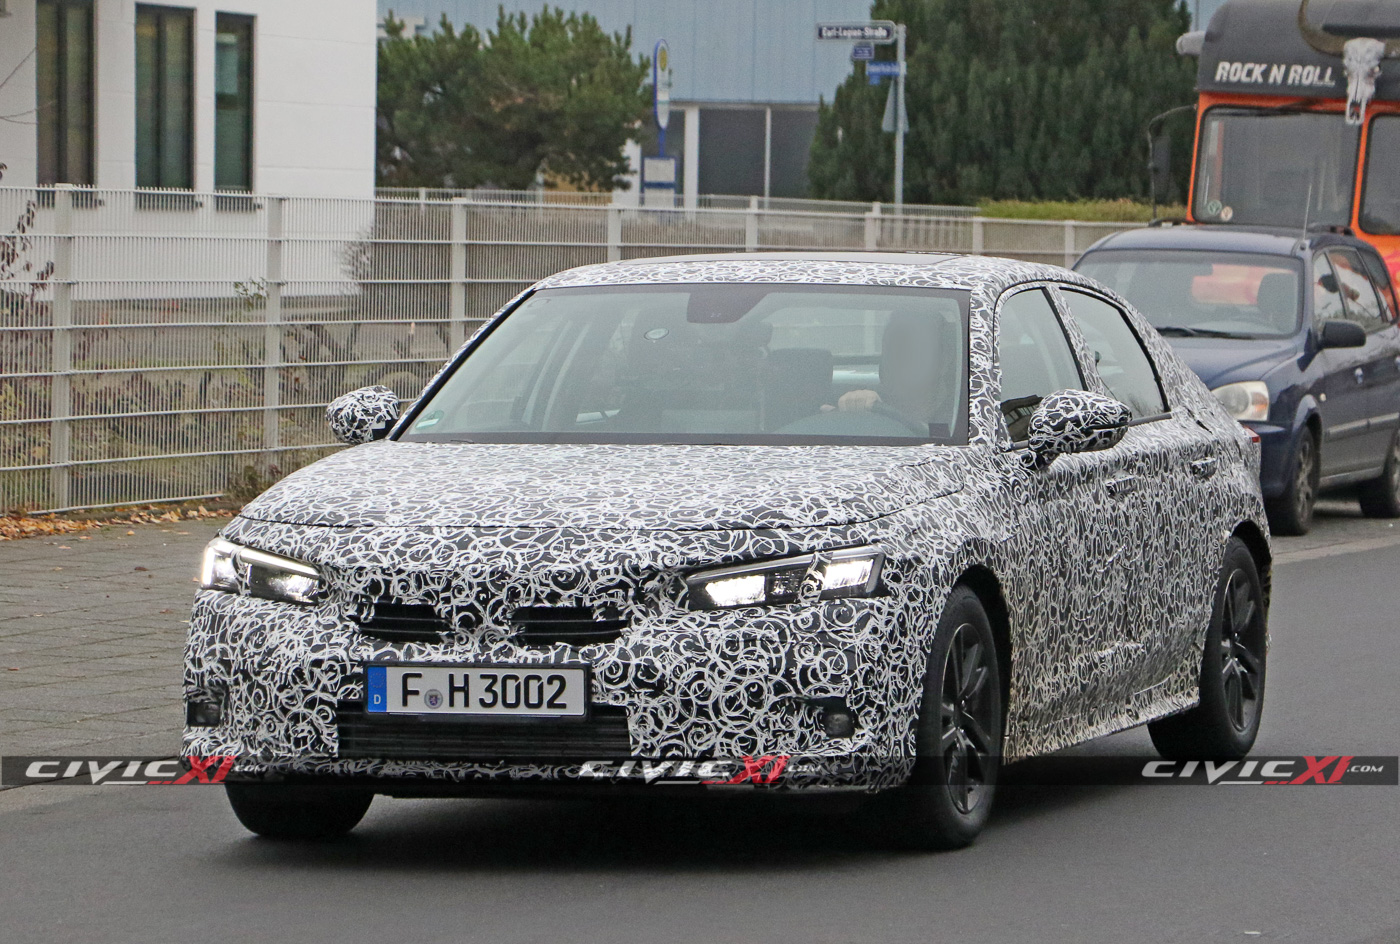 2022-Civic-Sedan-11th-Generation-Spied-Testing-Germany-4.jpg